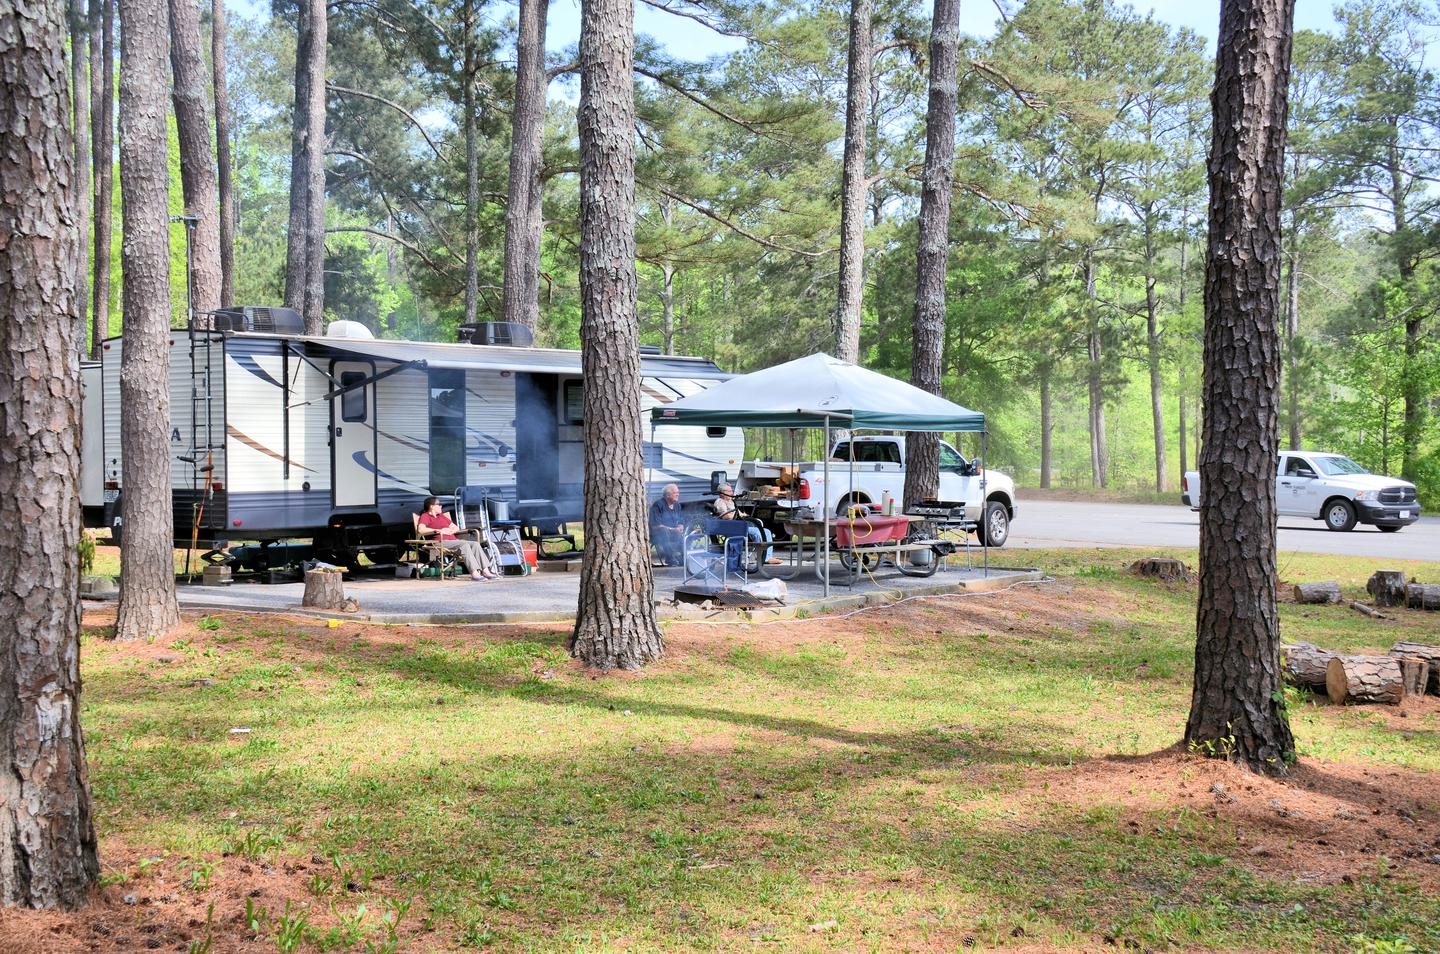 Sweetwater Campground Site 063 (6)Sweetwater Campground Site 063